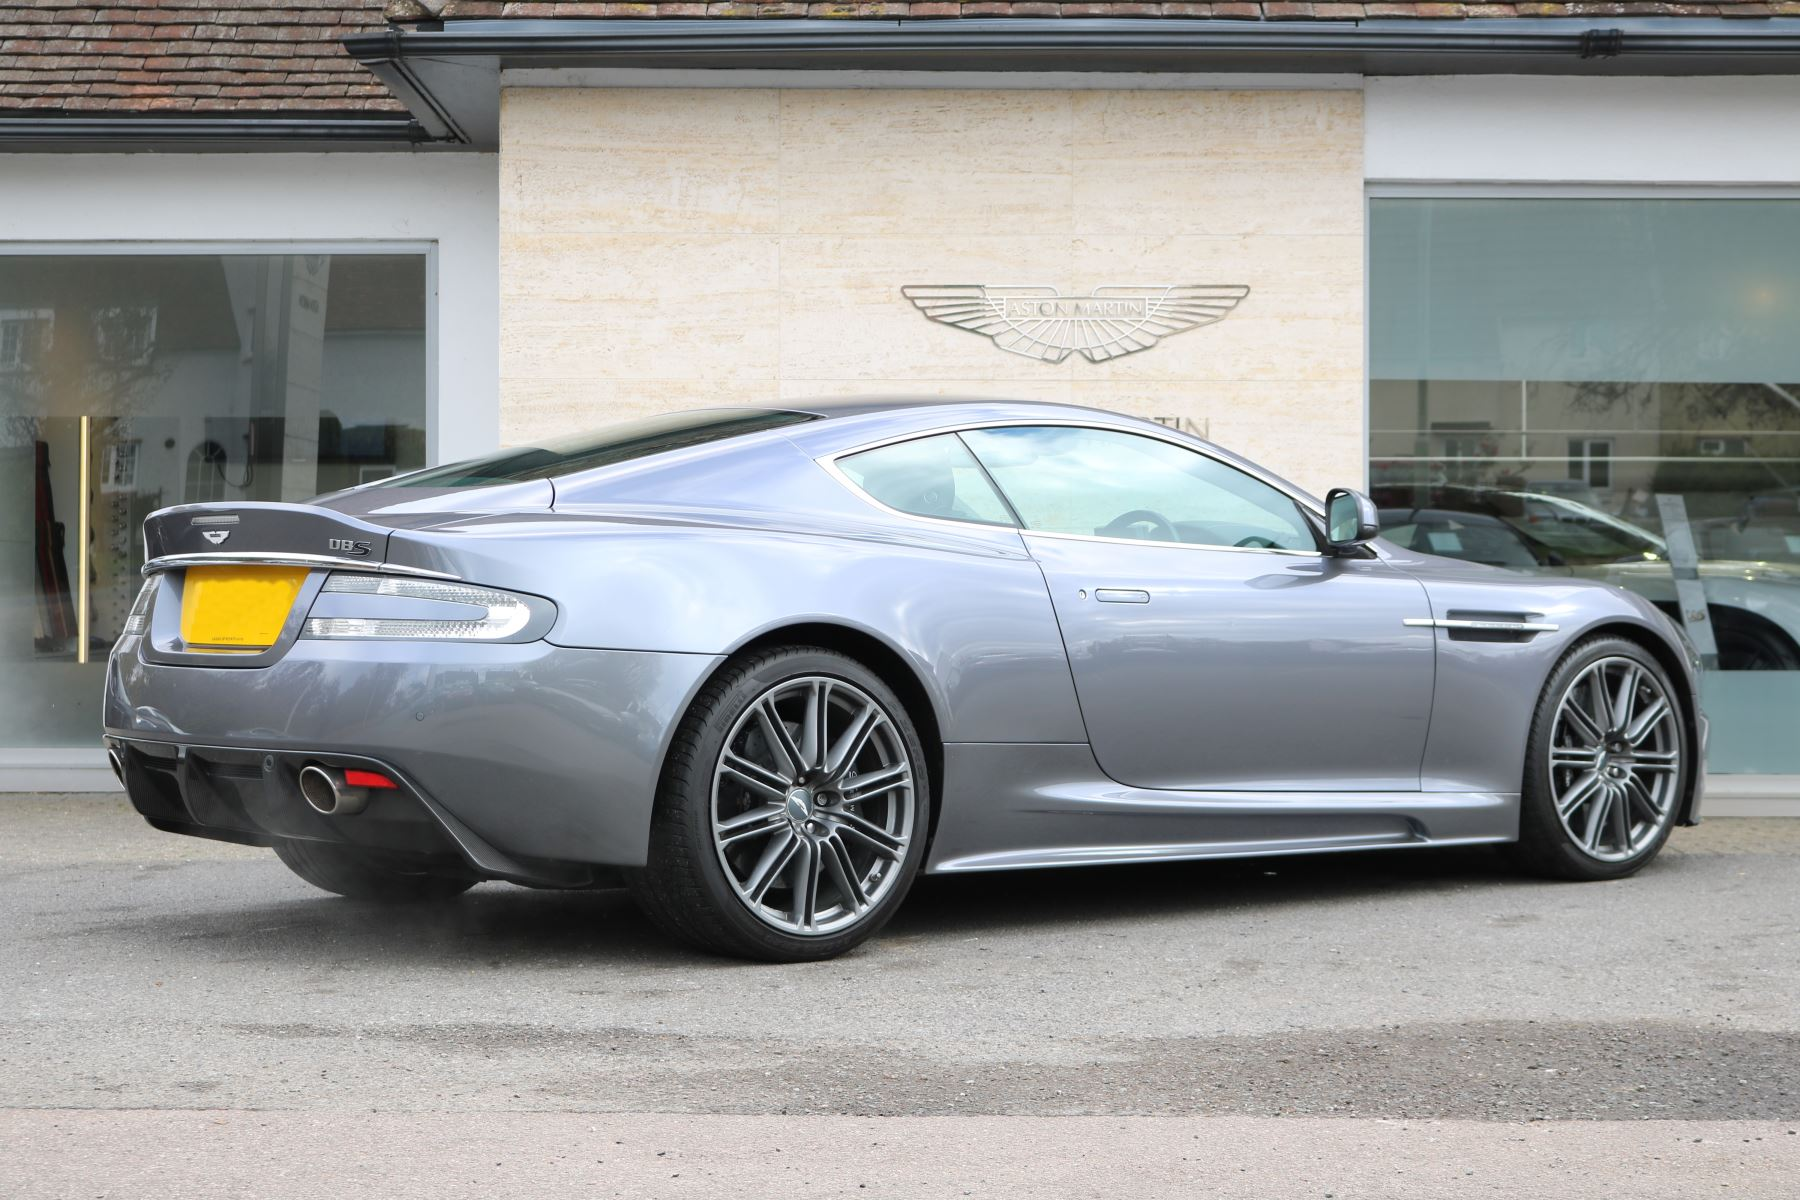 aston martin dbs v12 2dr touchtronic 5.9 automatic 3 door coupe